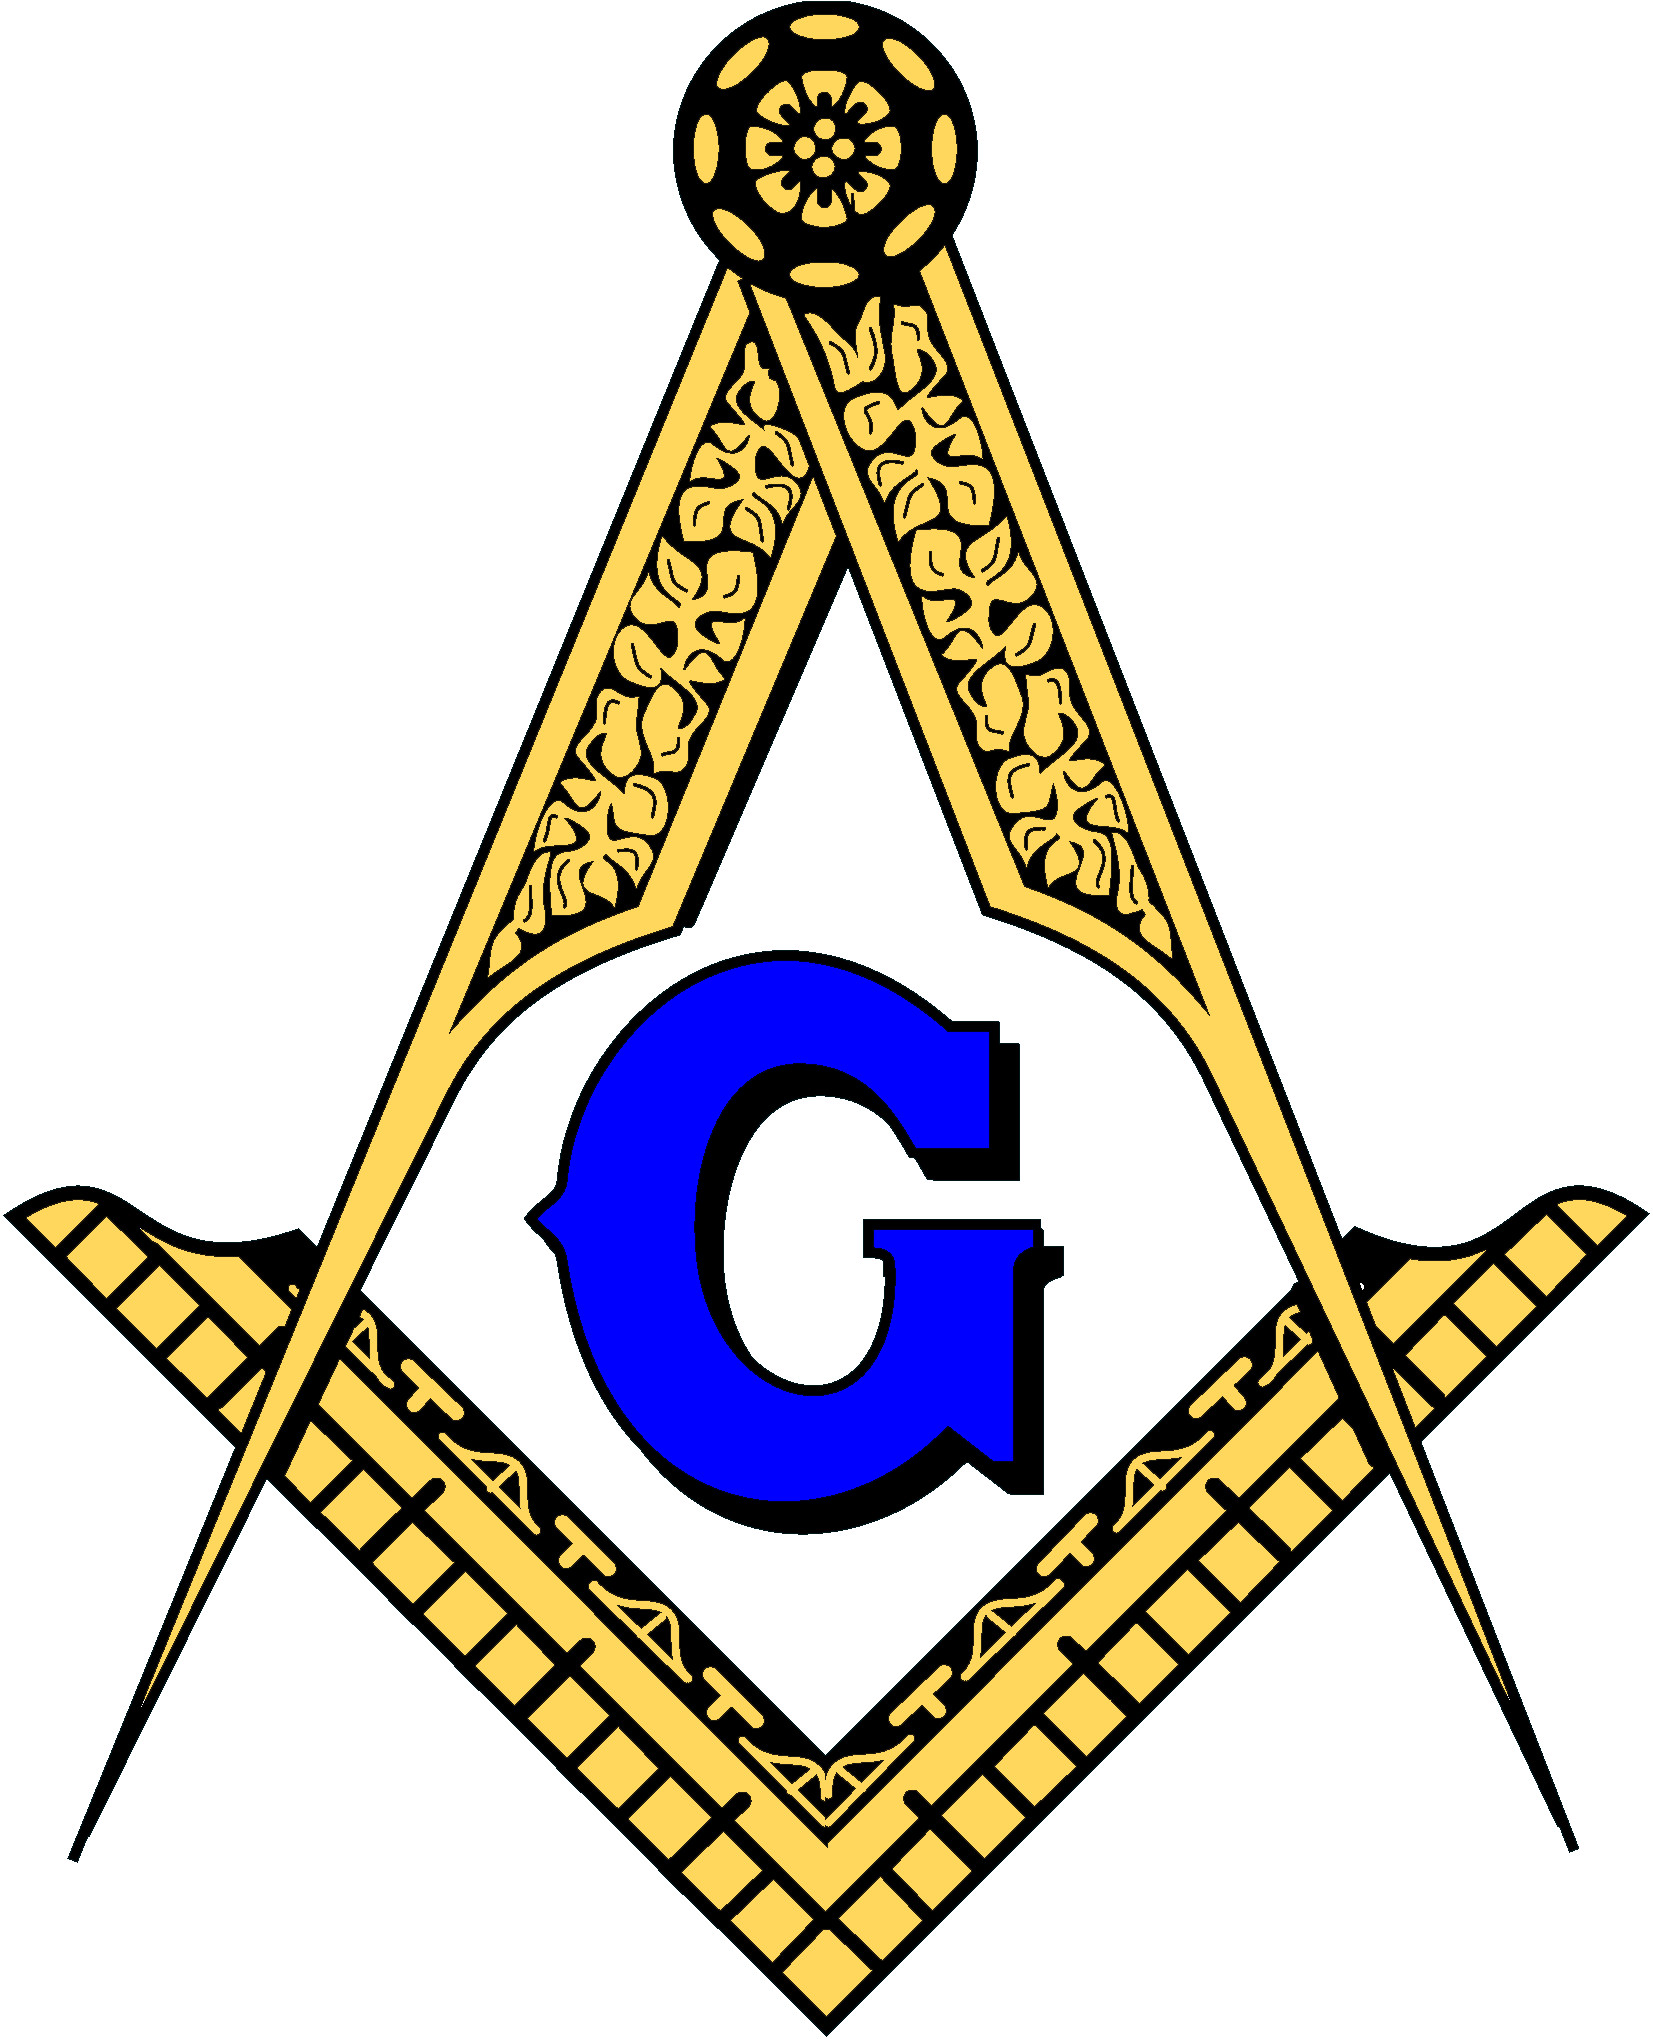 Union Star Masonic Lodge #320